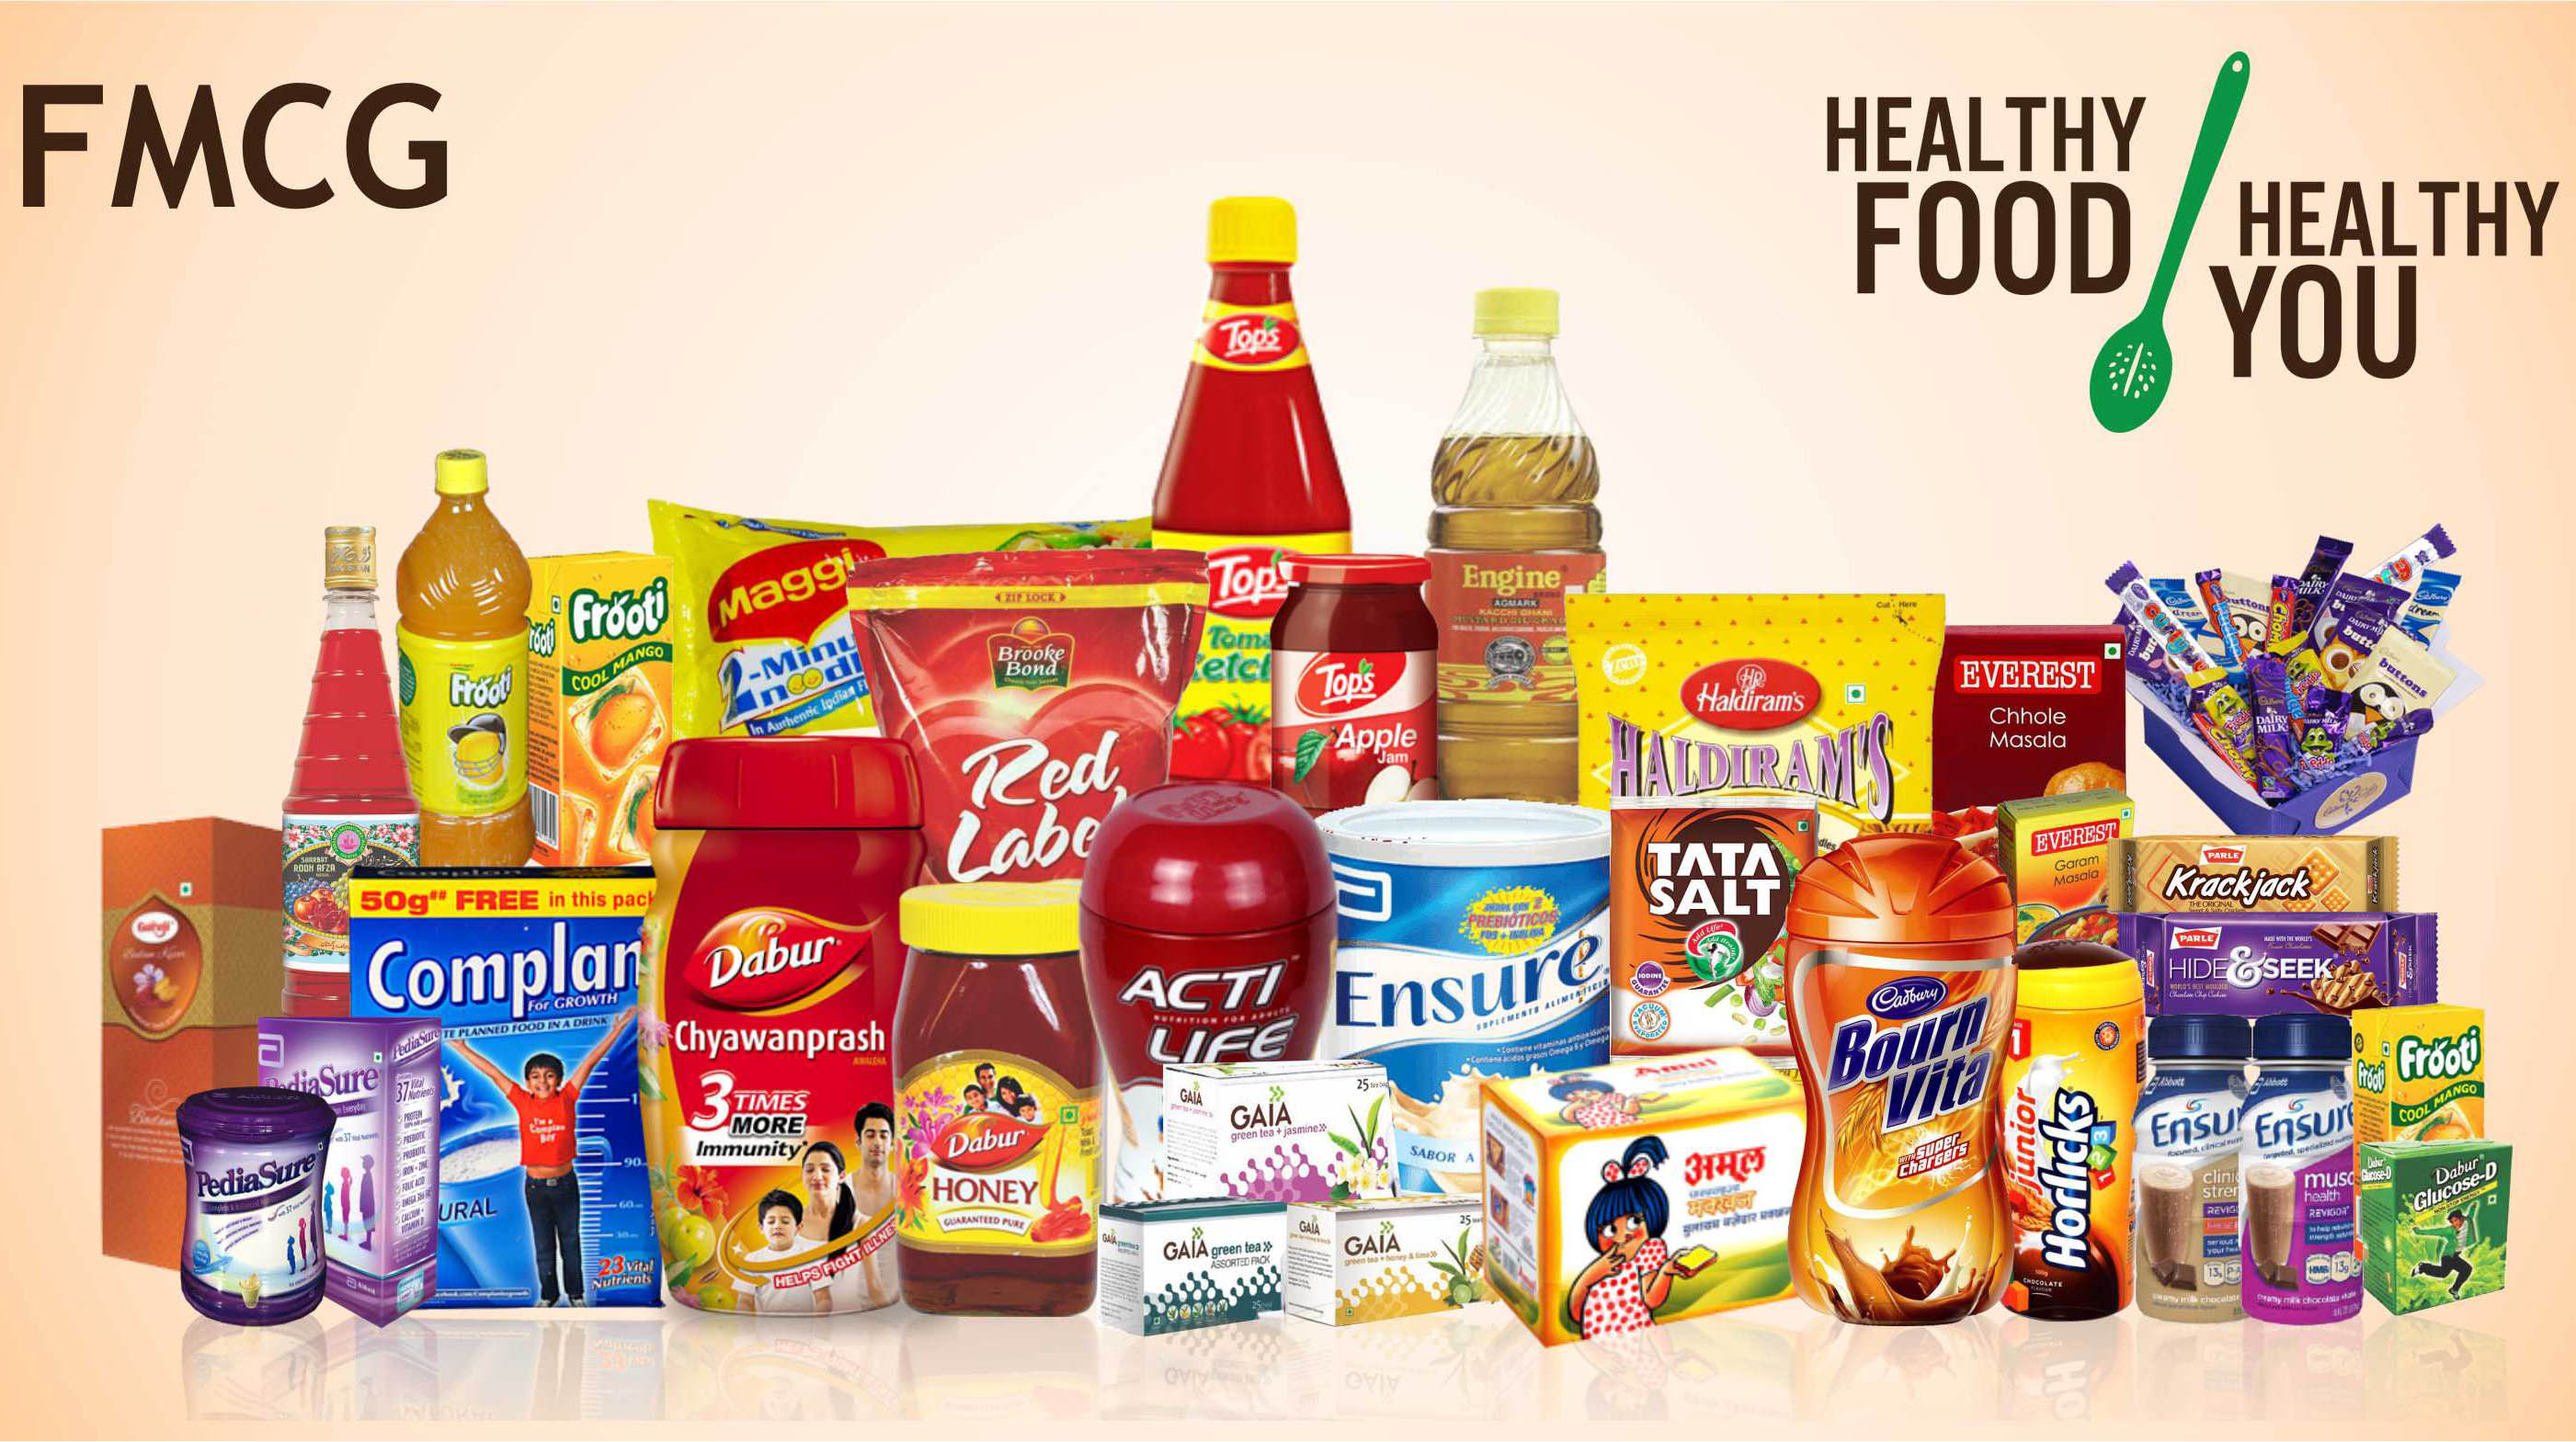 Budget 2017: Government's focus on agricultural sector likely to benefit FMCG stocks